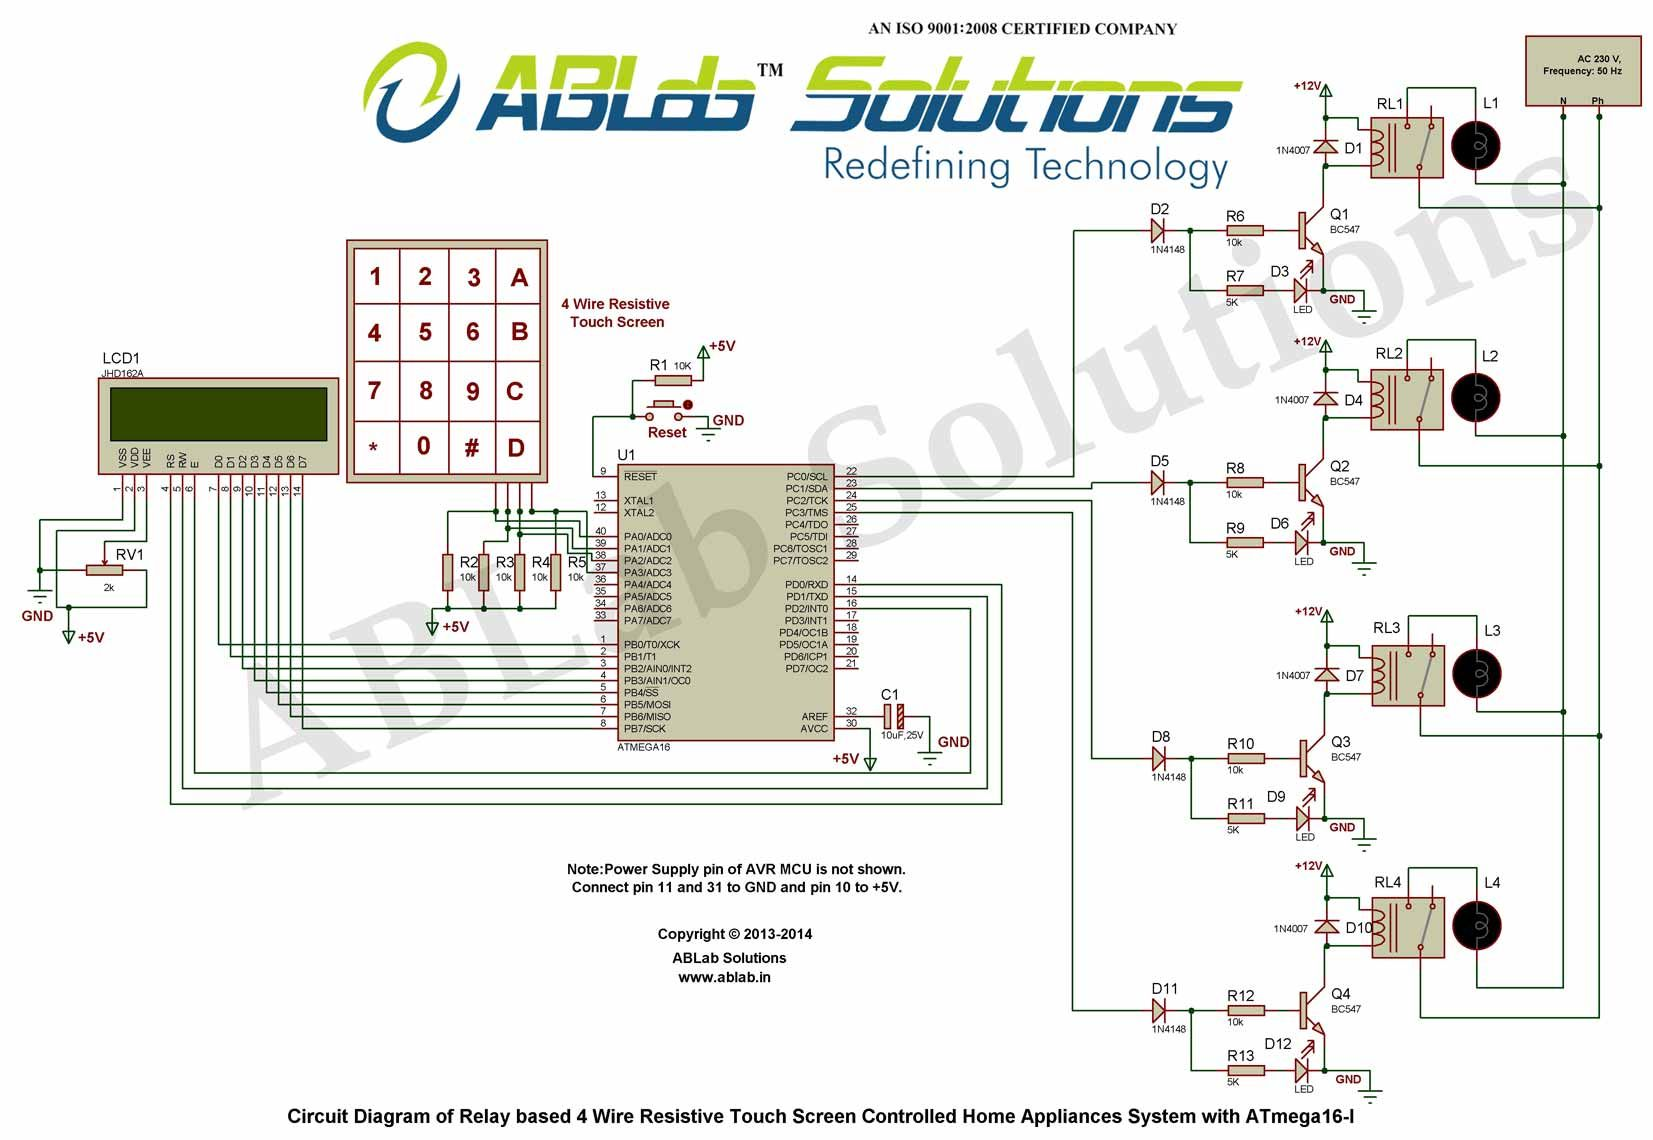 relay based 4 wire resistive touch screen controlled home appliances system with avr atmega16 microcontroller i circuit diagram [ 1653 x 1140 Pixel ]